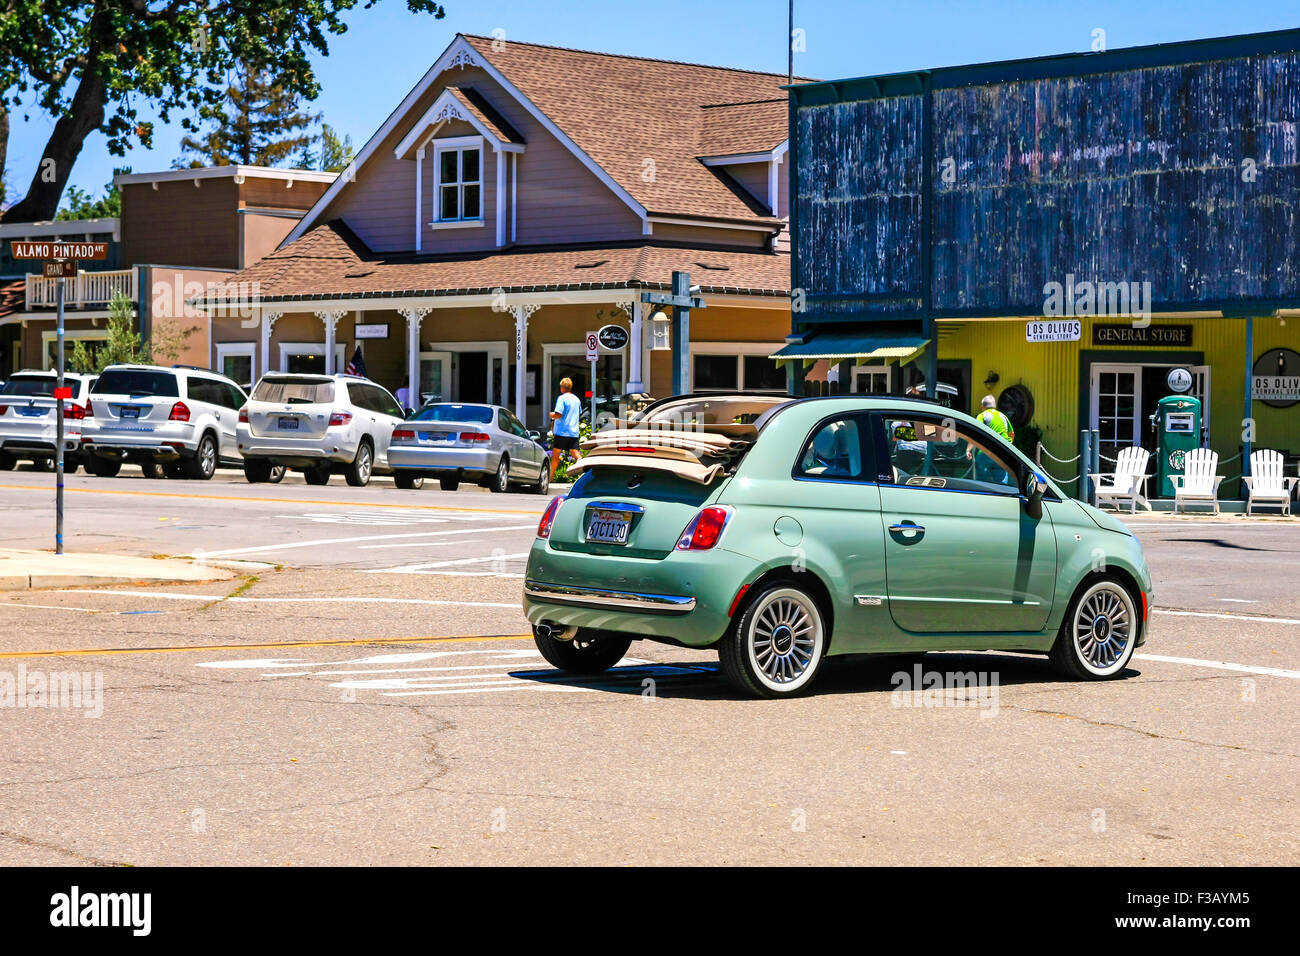 a fiat 500 convertible with white wall tires resembling the original